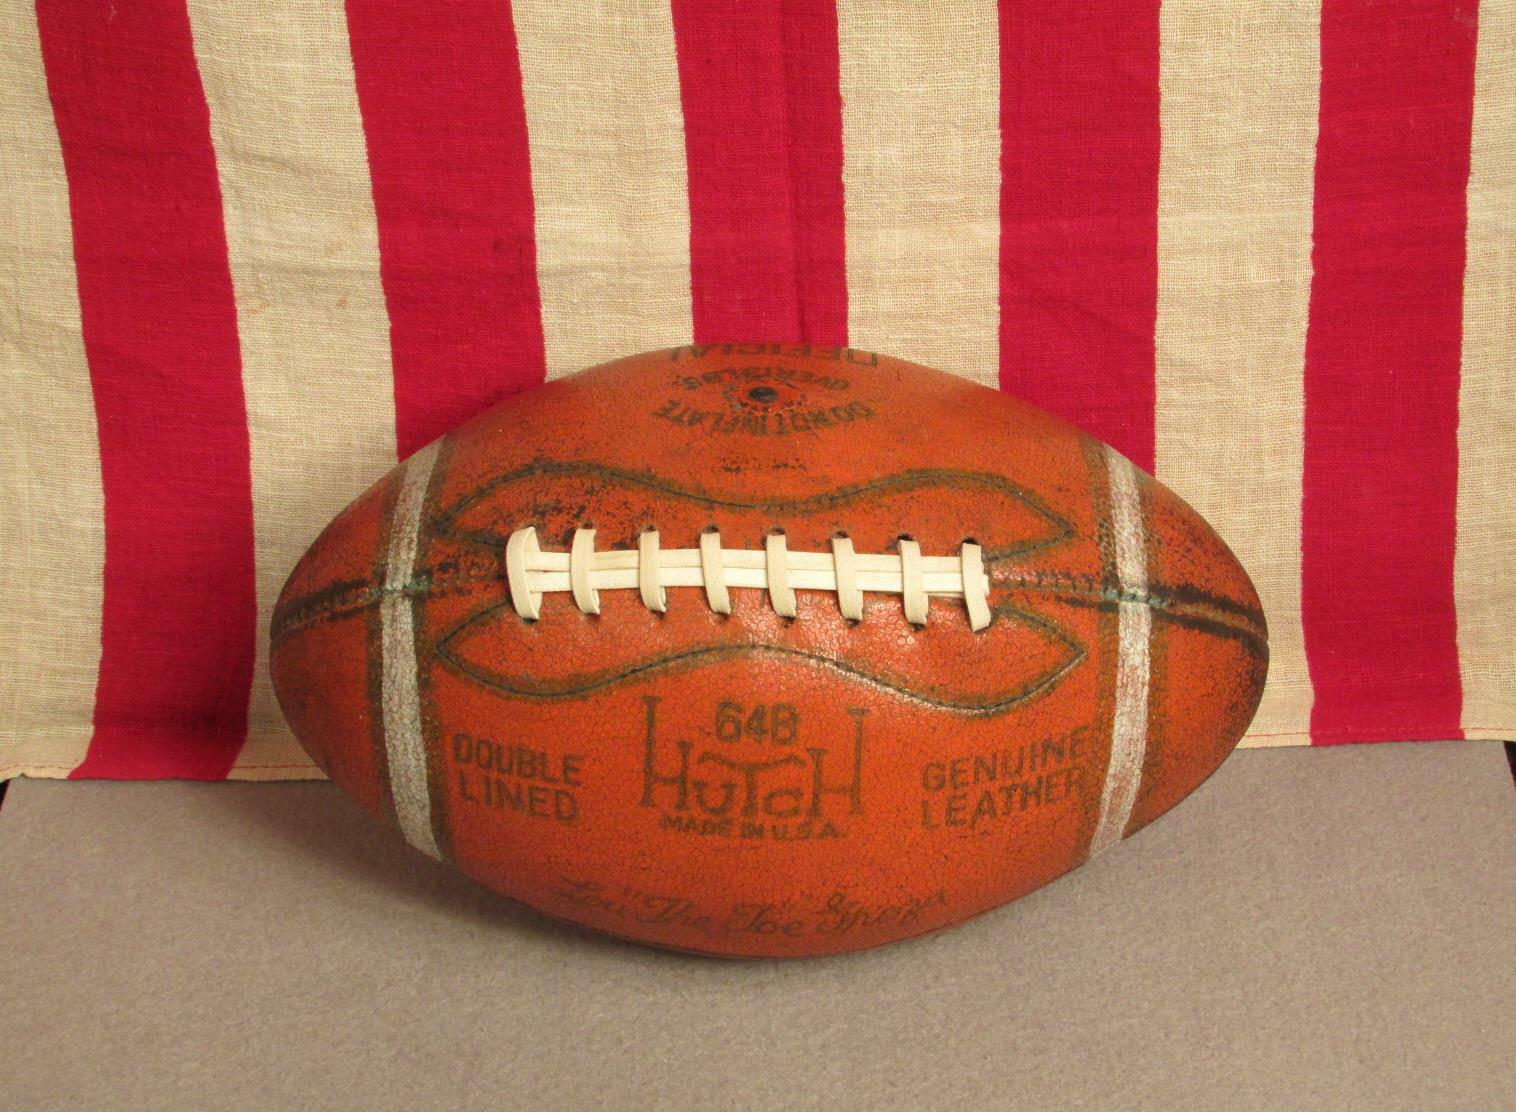 Vintage 1950s Hutch Leather Official Football Laces Lou The Toe Groza 64B Browns